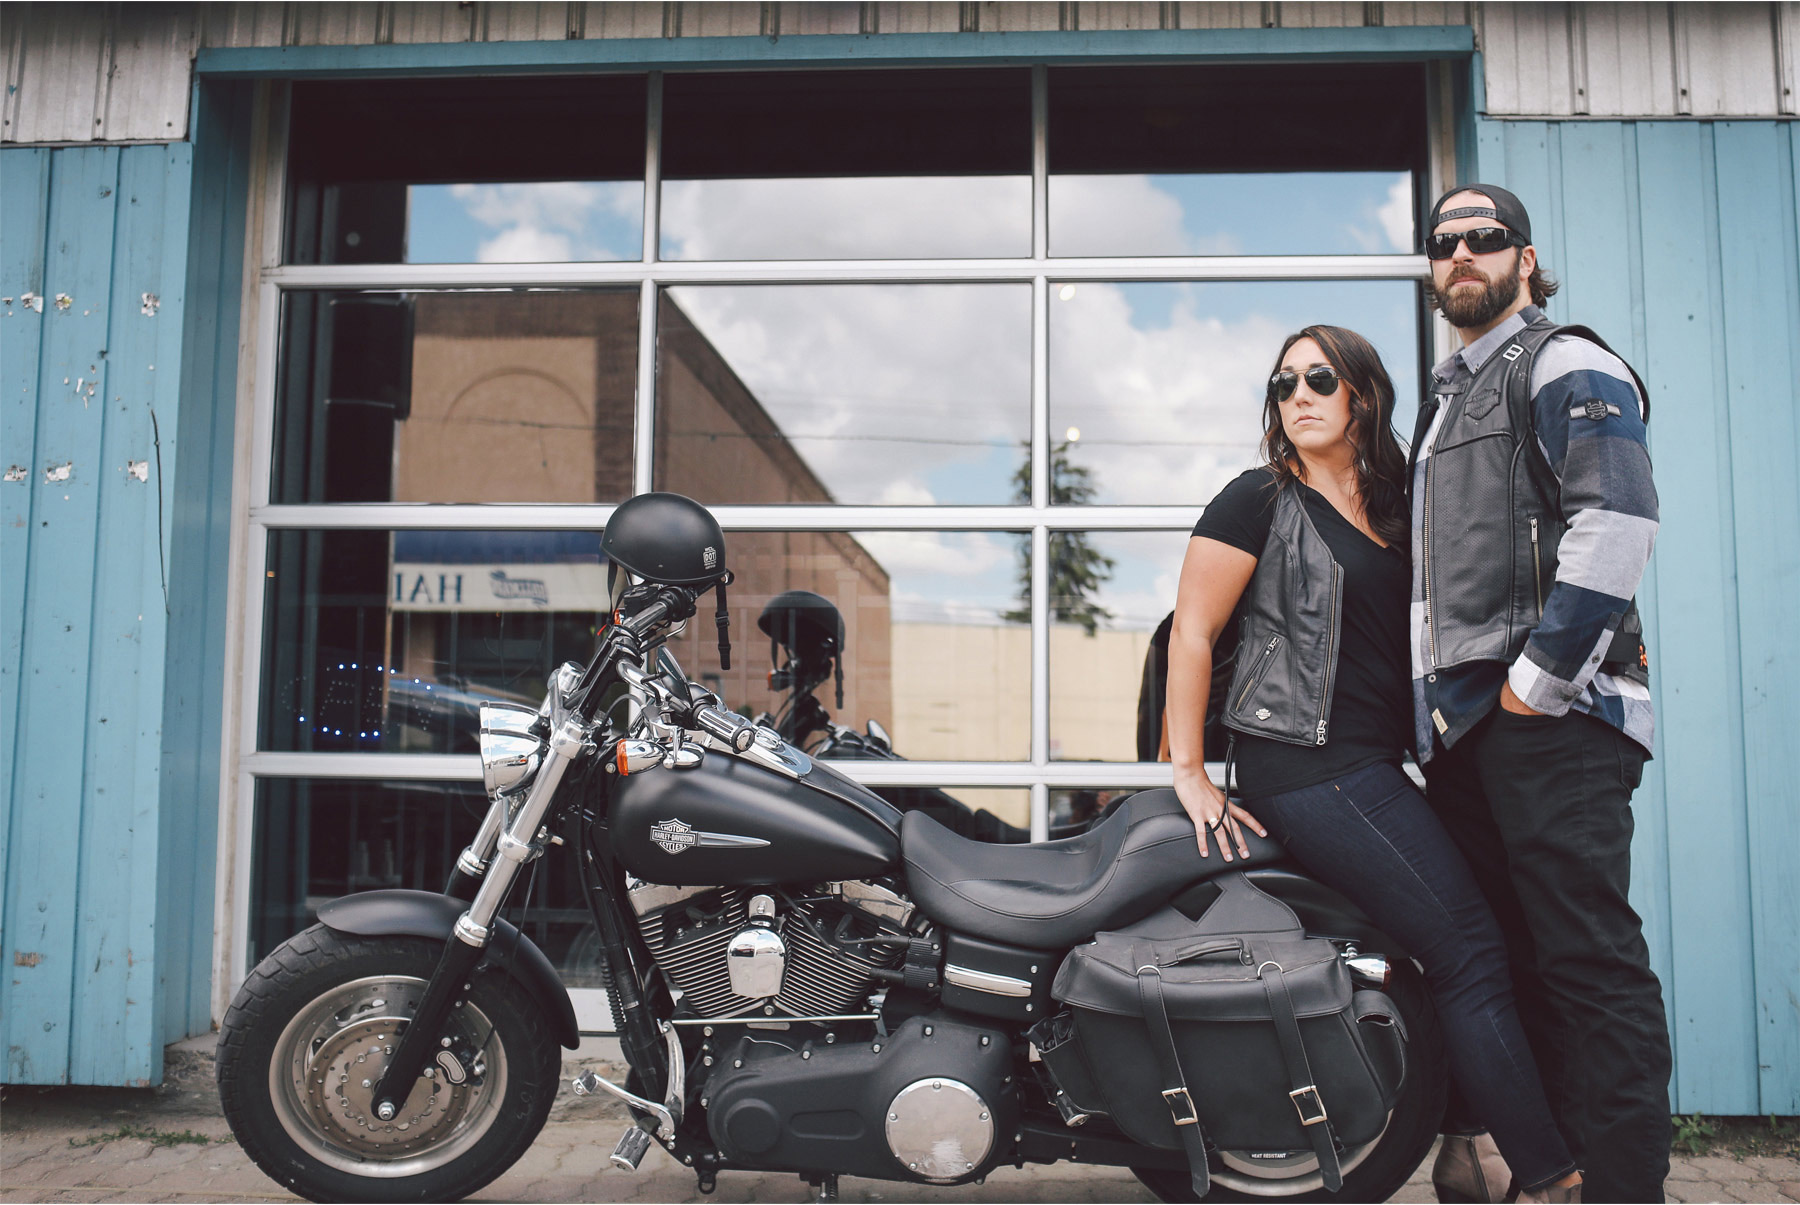 05-Calgary-Canada-Engagement-Photography-by-Vick-Photography-Bikers-Harley-Davidson-Lizz-and-Brady.jpg